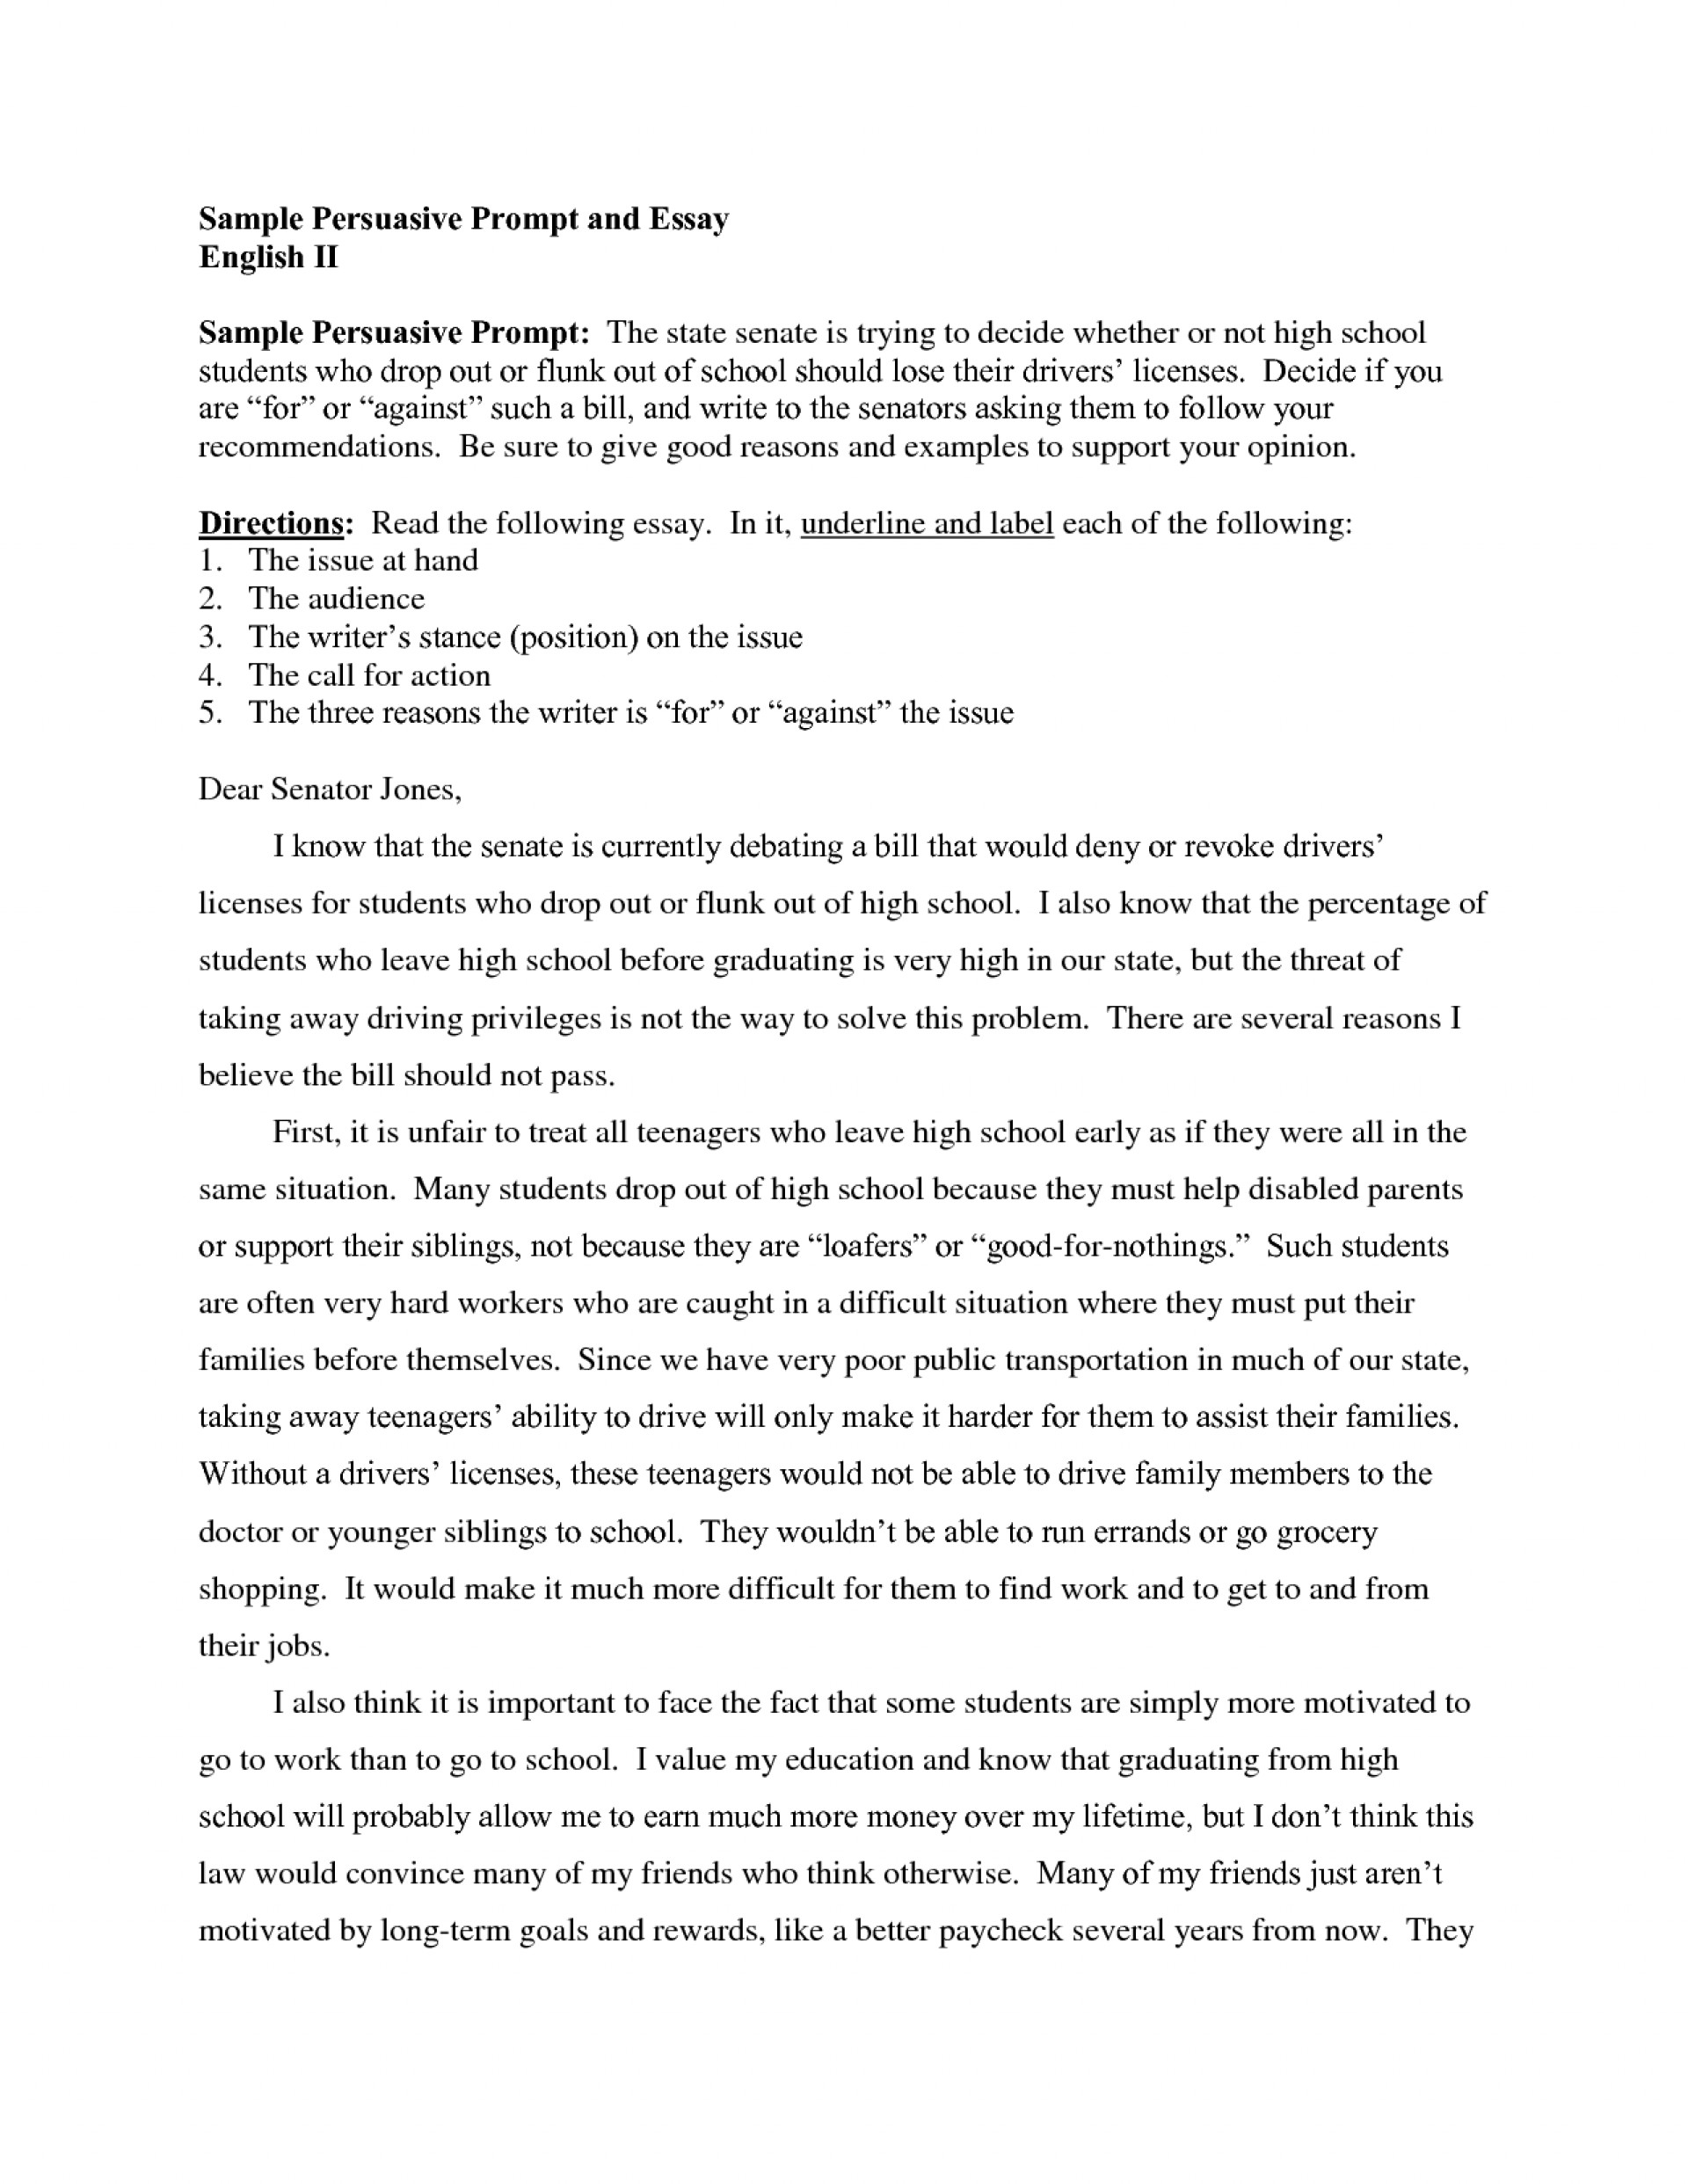 013 Research Paper Easy Topic Persuasive Essay Topics For High School Sample Ideas Highschool Students Good Prompt Funny Fun List Of Seniors Writing English Sensational Psychology History 1920